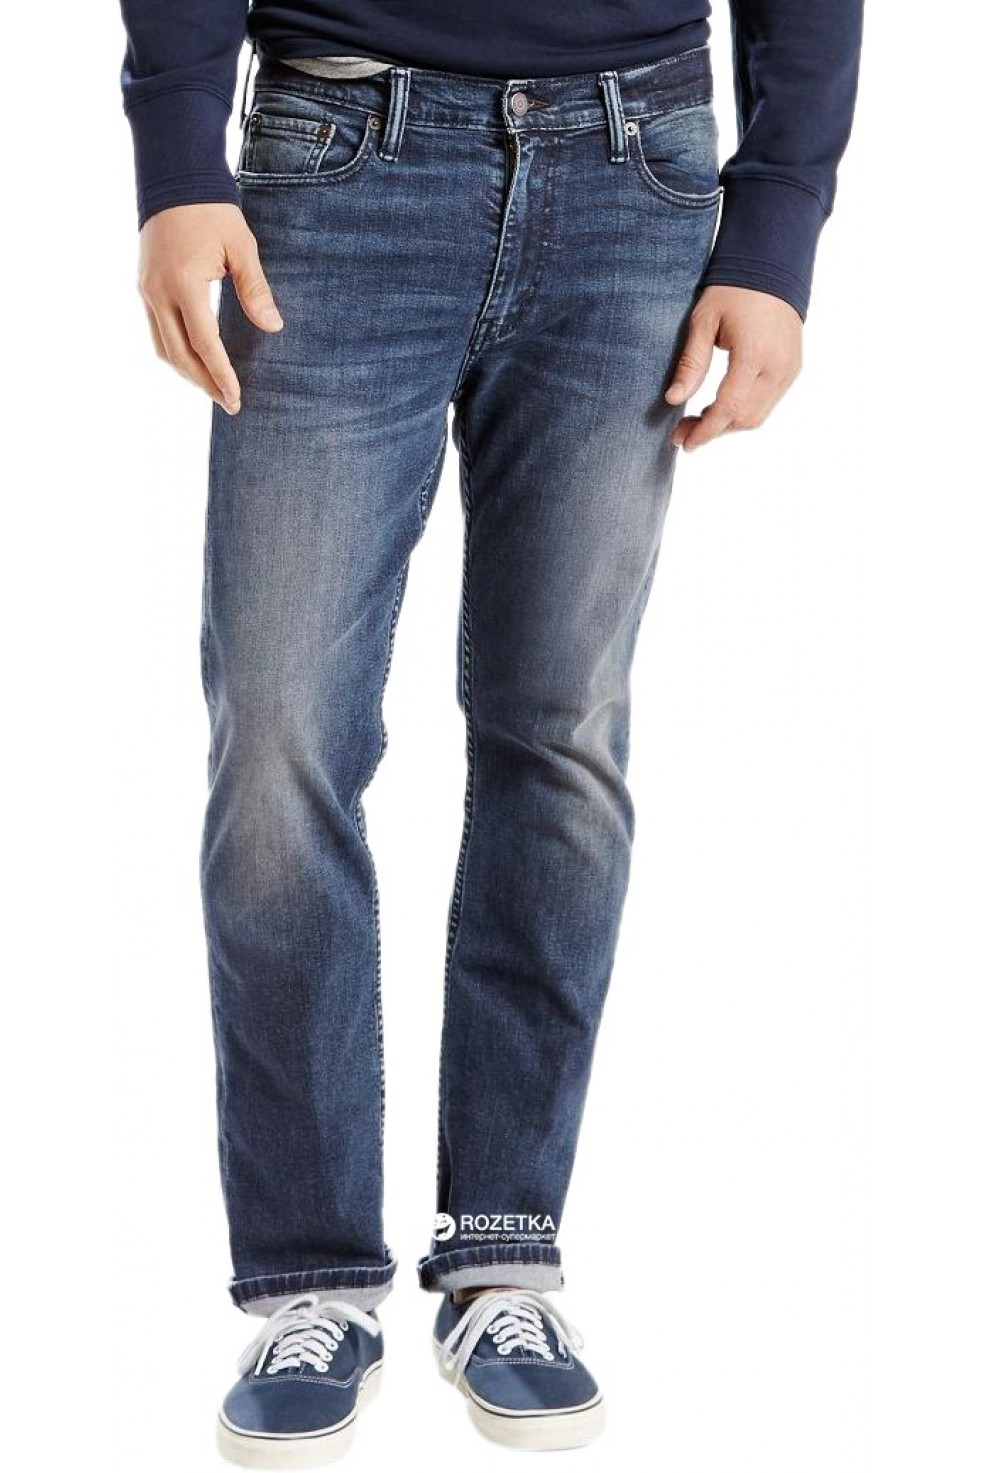 Levis-Erkek-Jean-Pantolon-513-Slim-Straight-Fit-08513-0705